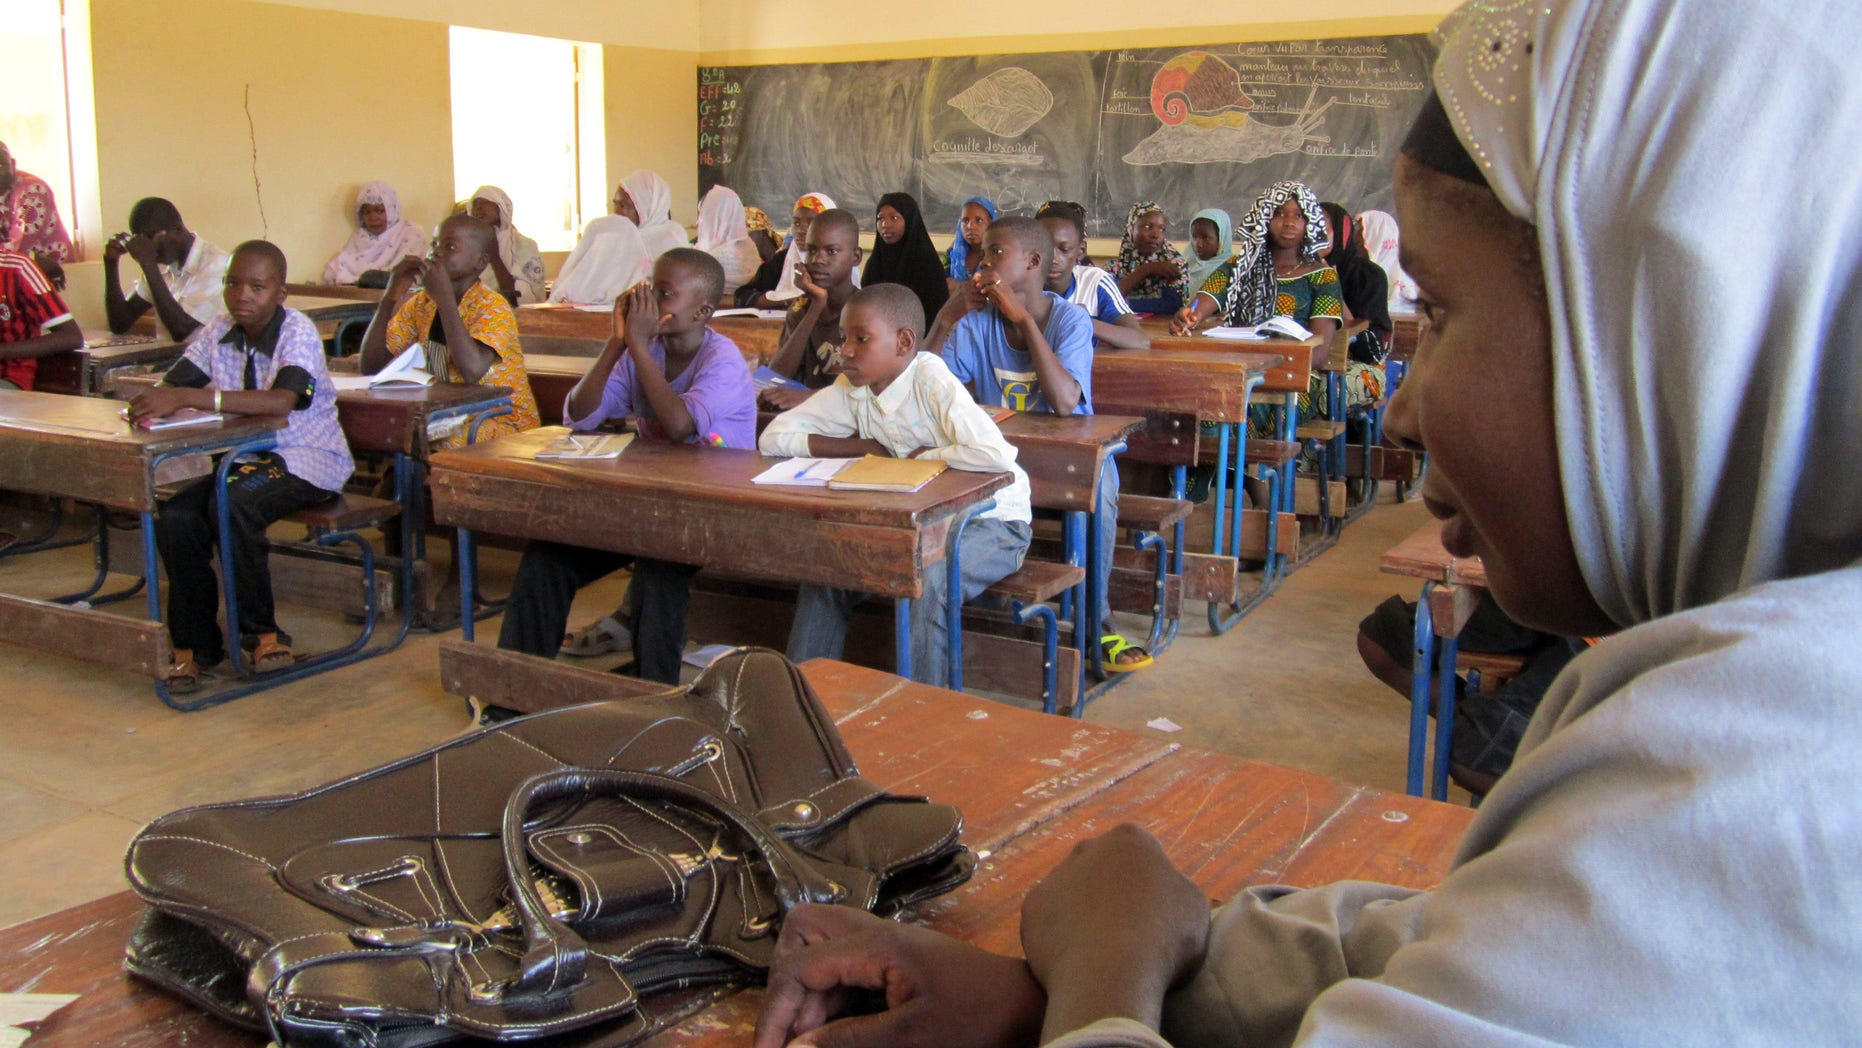 Sept. 27, 2012 - school children listen to a teacher during class in Douentza, Mali.